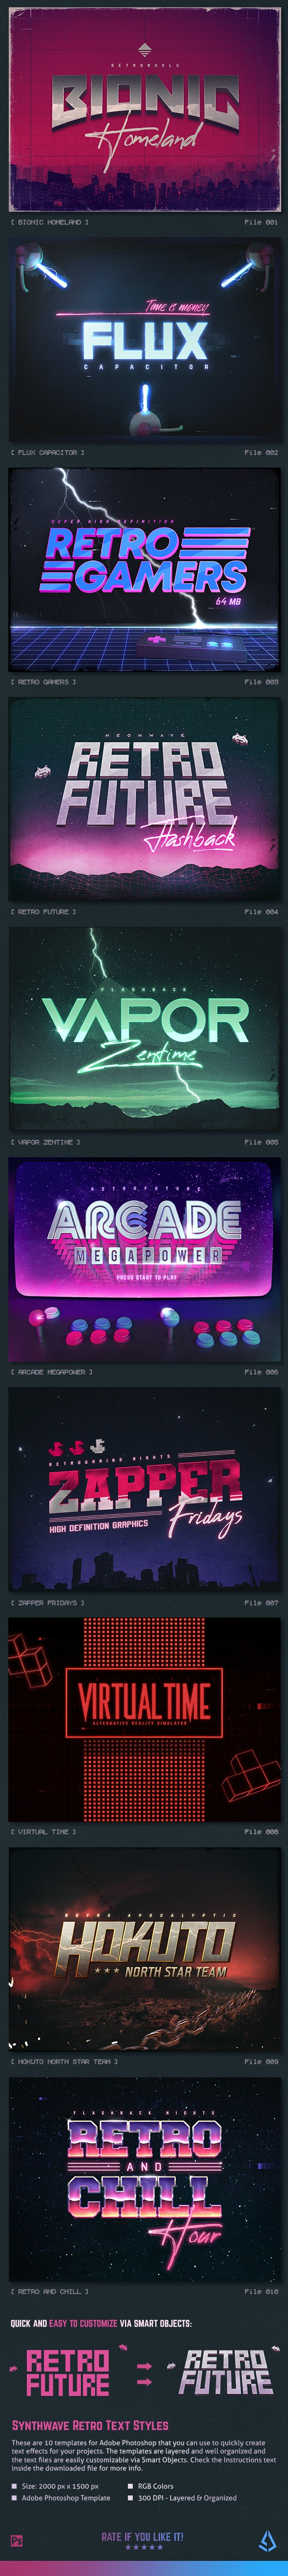 Synthwave 80s Retro Text Effects V2 - Text Effects Actions